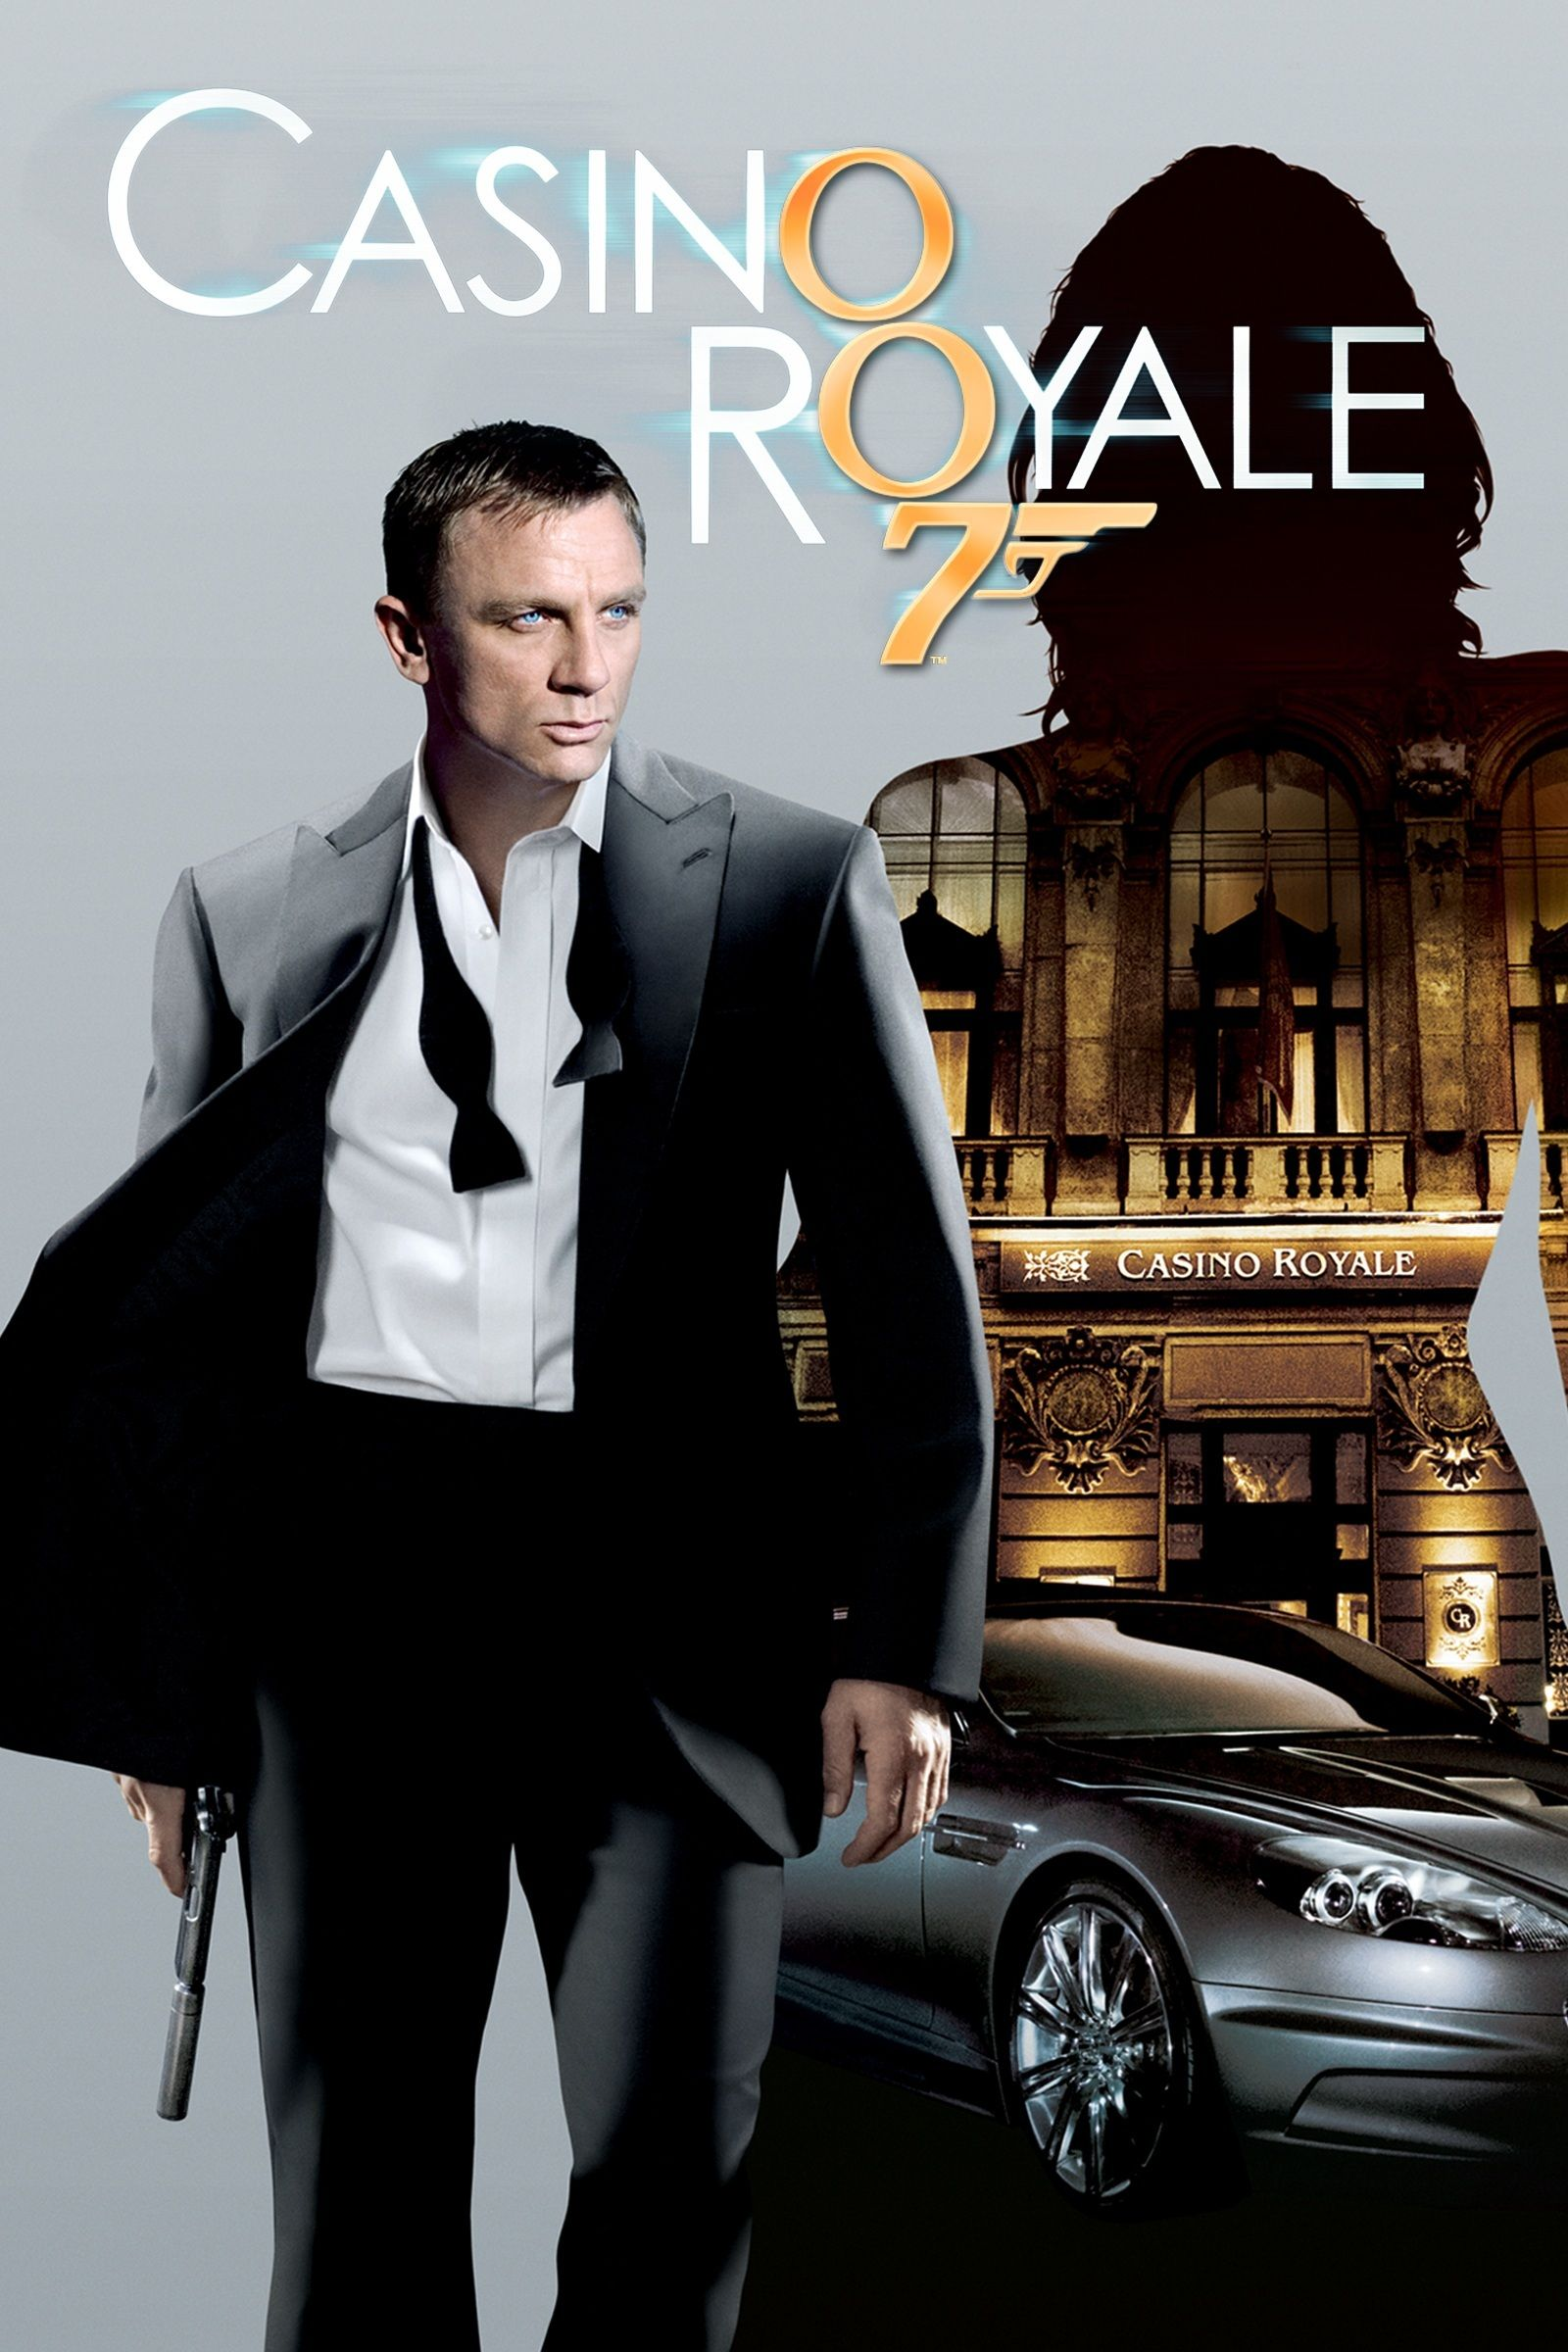 Casino poster royale wausau to reno gambling packages